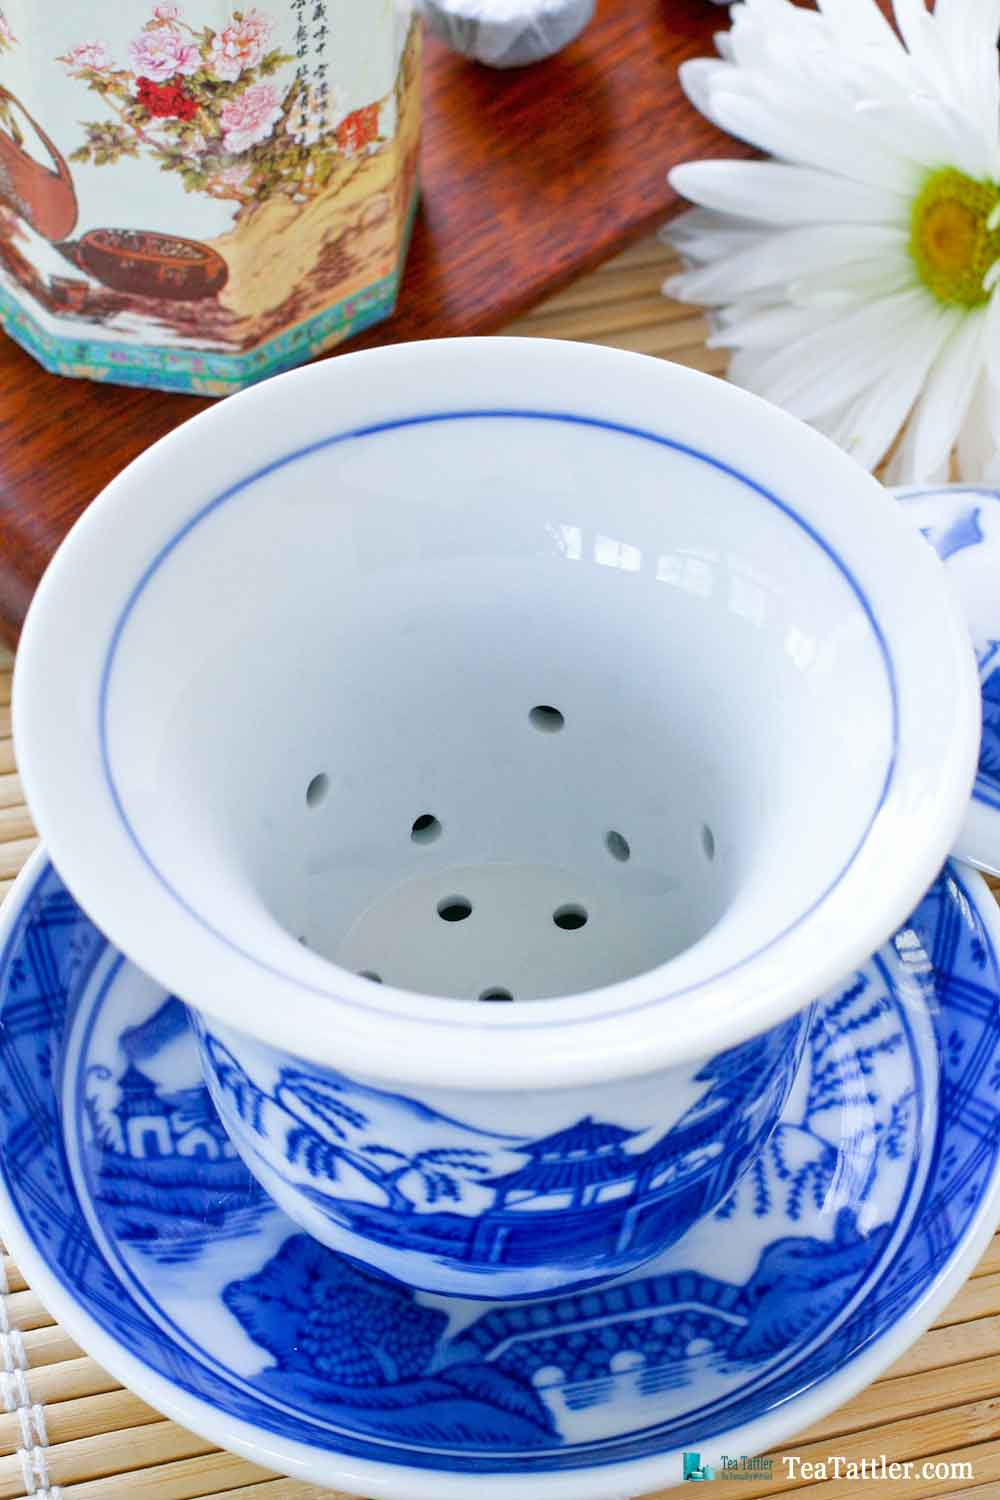 Blue and White Gaiwan with a pattern similar to the Spode Blue Willow pattern. It has a porcelain filter insert suitable for loose leave tea. | TeaTattler.com #gaiwan #liddedbowl